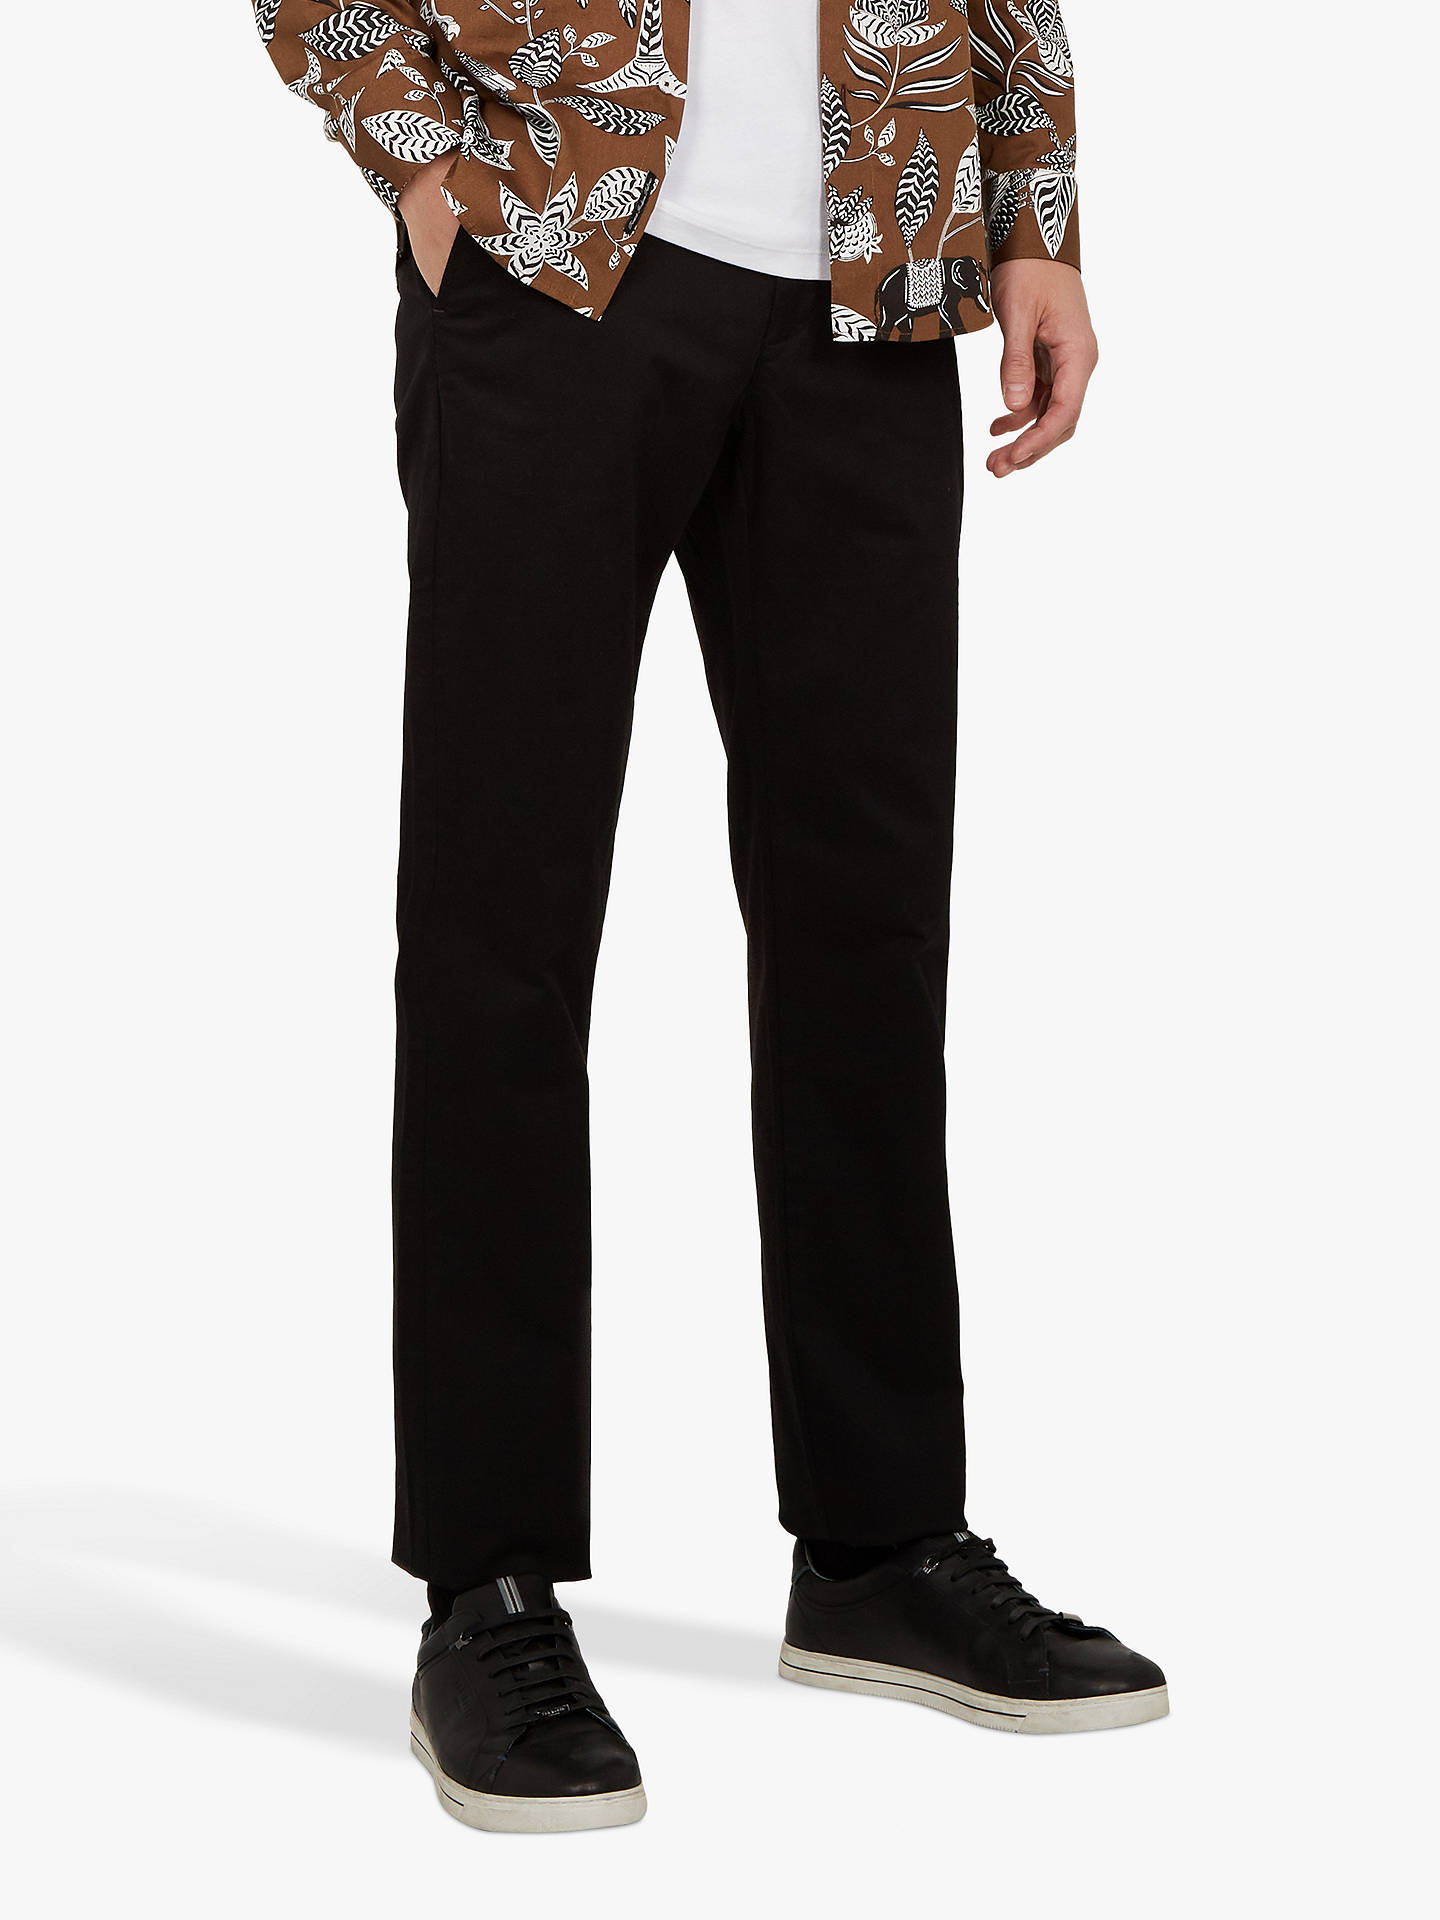 3b9d1aa5f23540 Ted Baker Seenchi Slim Fit Chinos at John Lewis   Partners